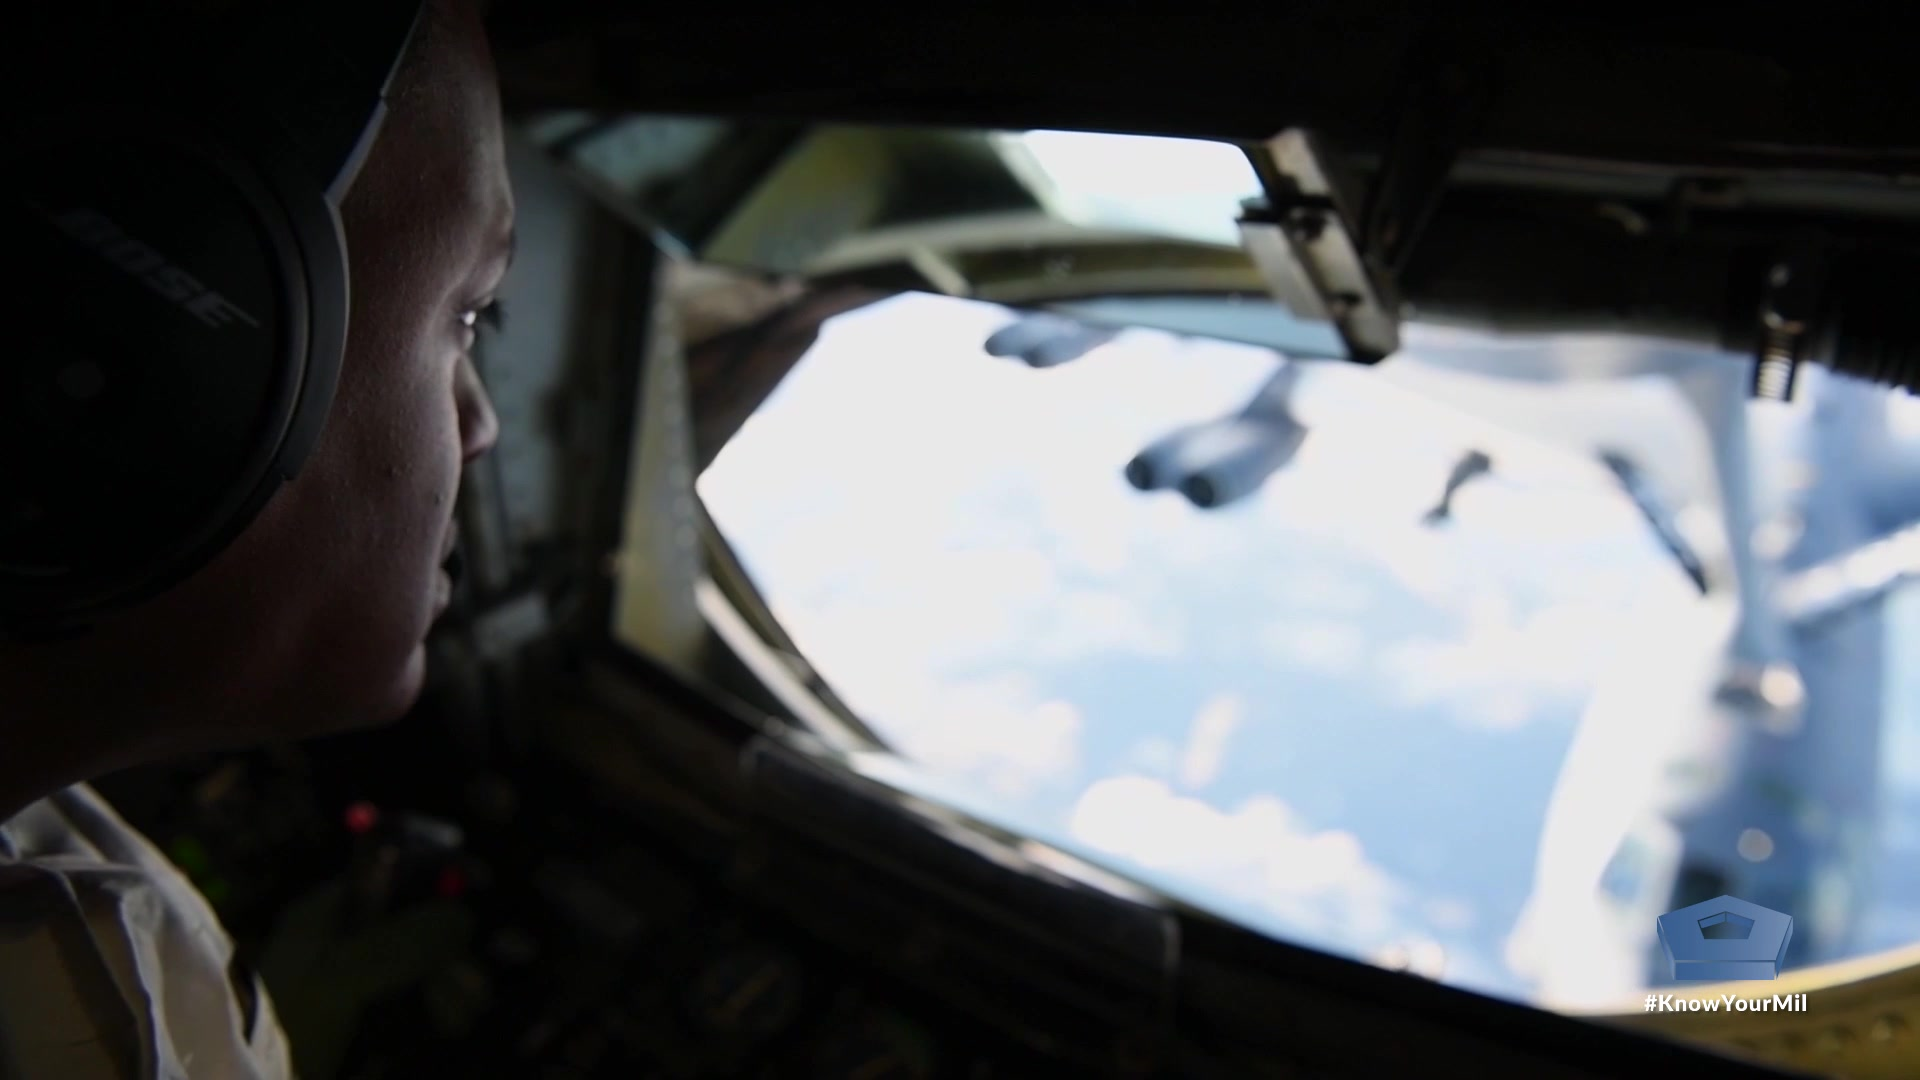 An airman looks out the window of an aircraft.